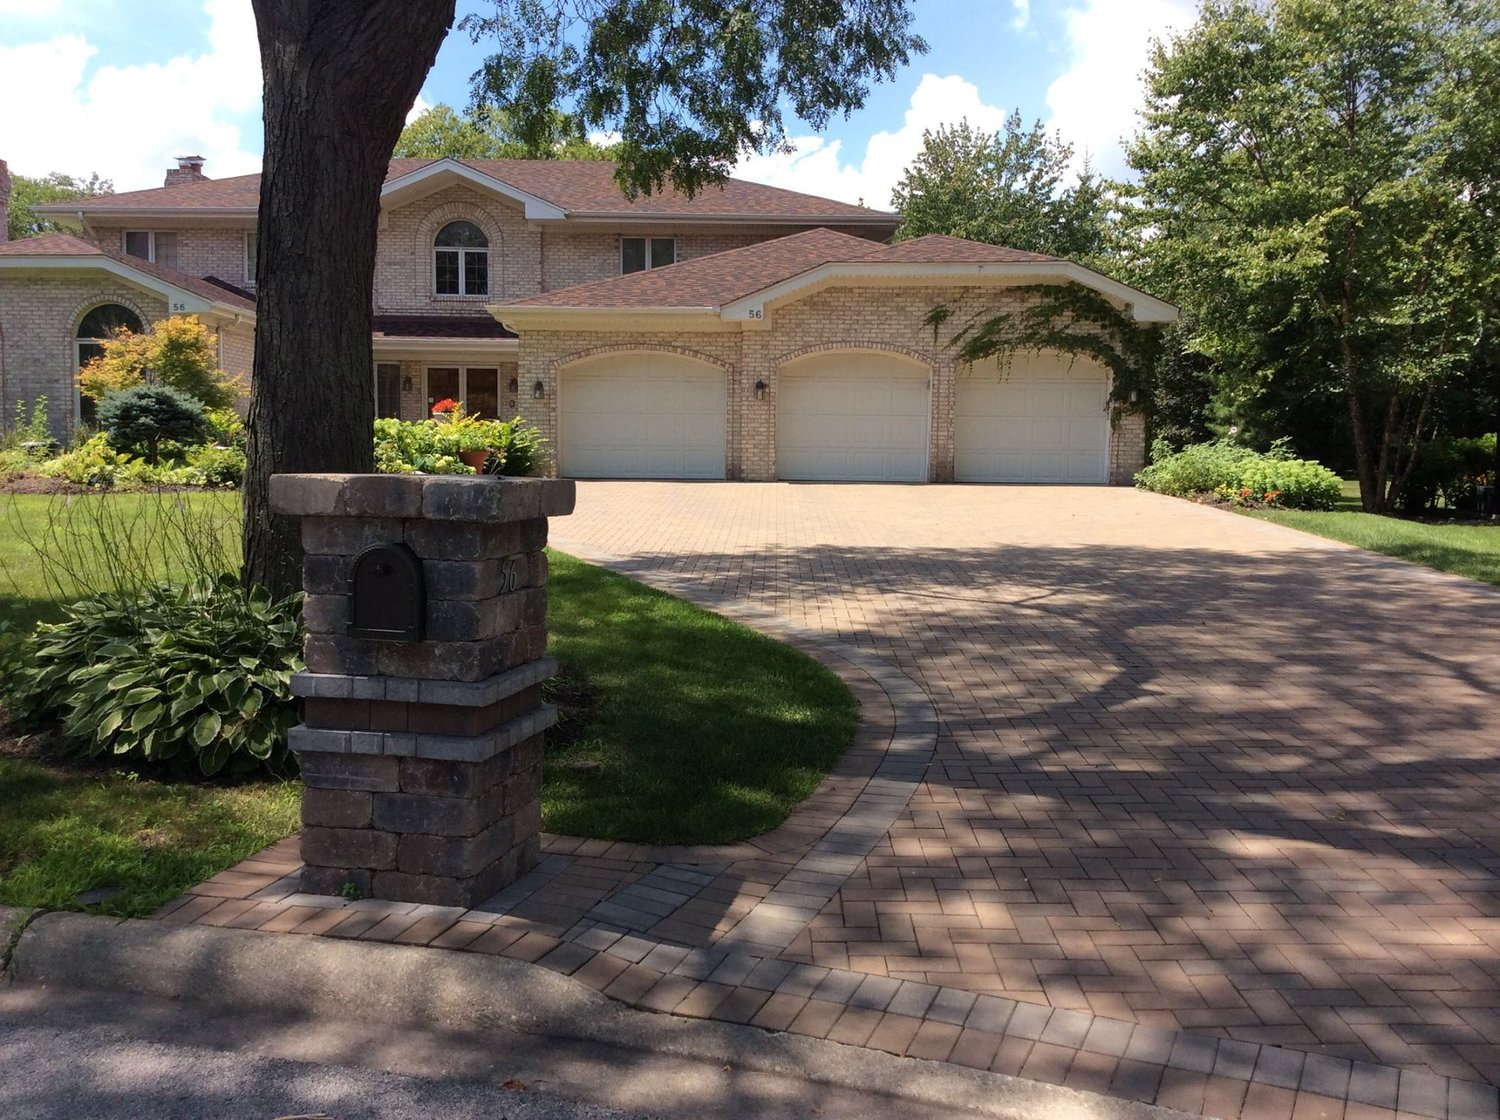 Improve Your Home's Curb Appeal With These Brick Driveway Edging Ideas In Hinsdale, IL